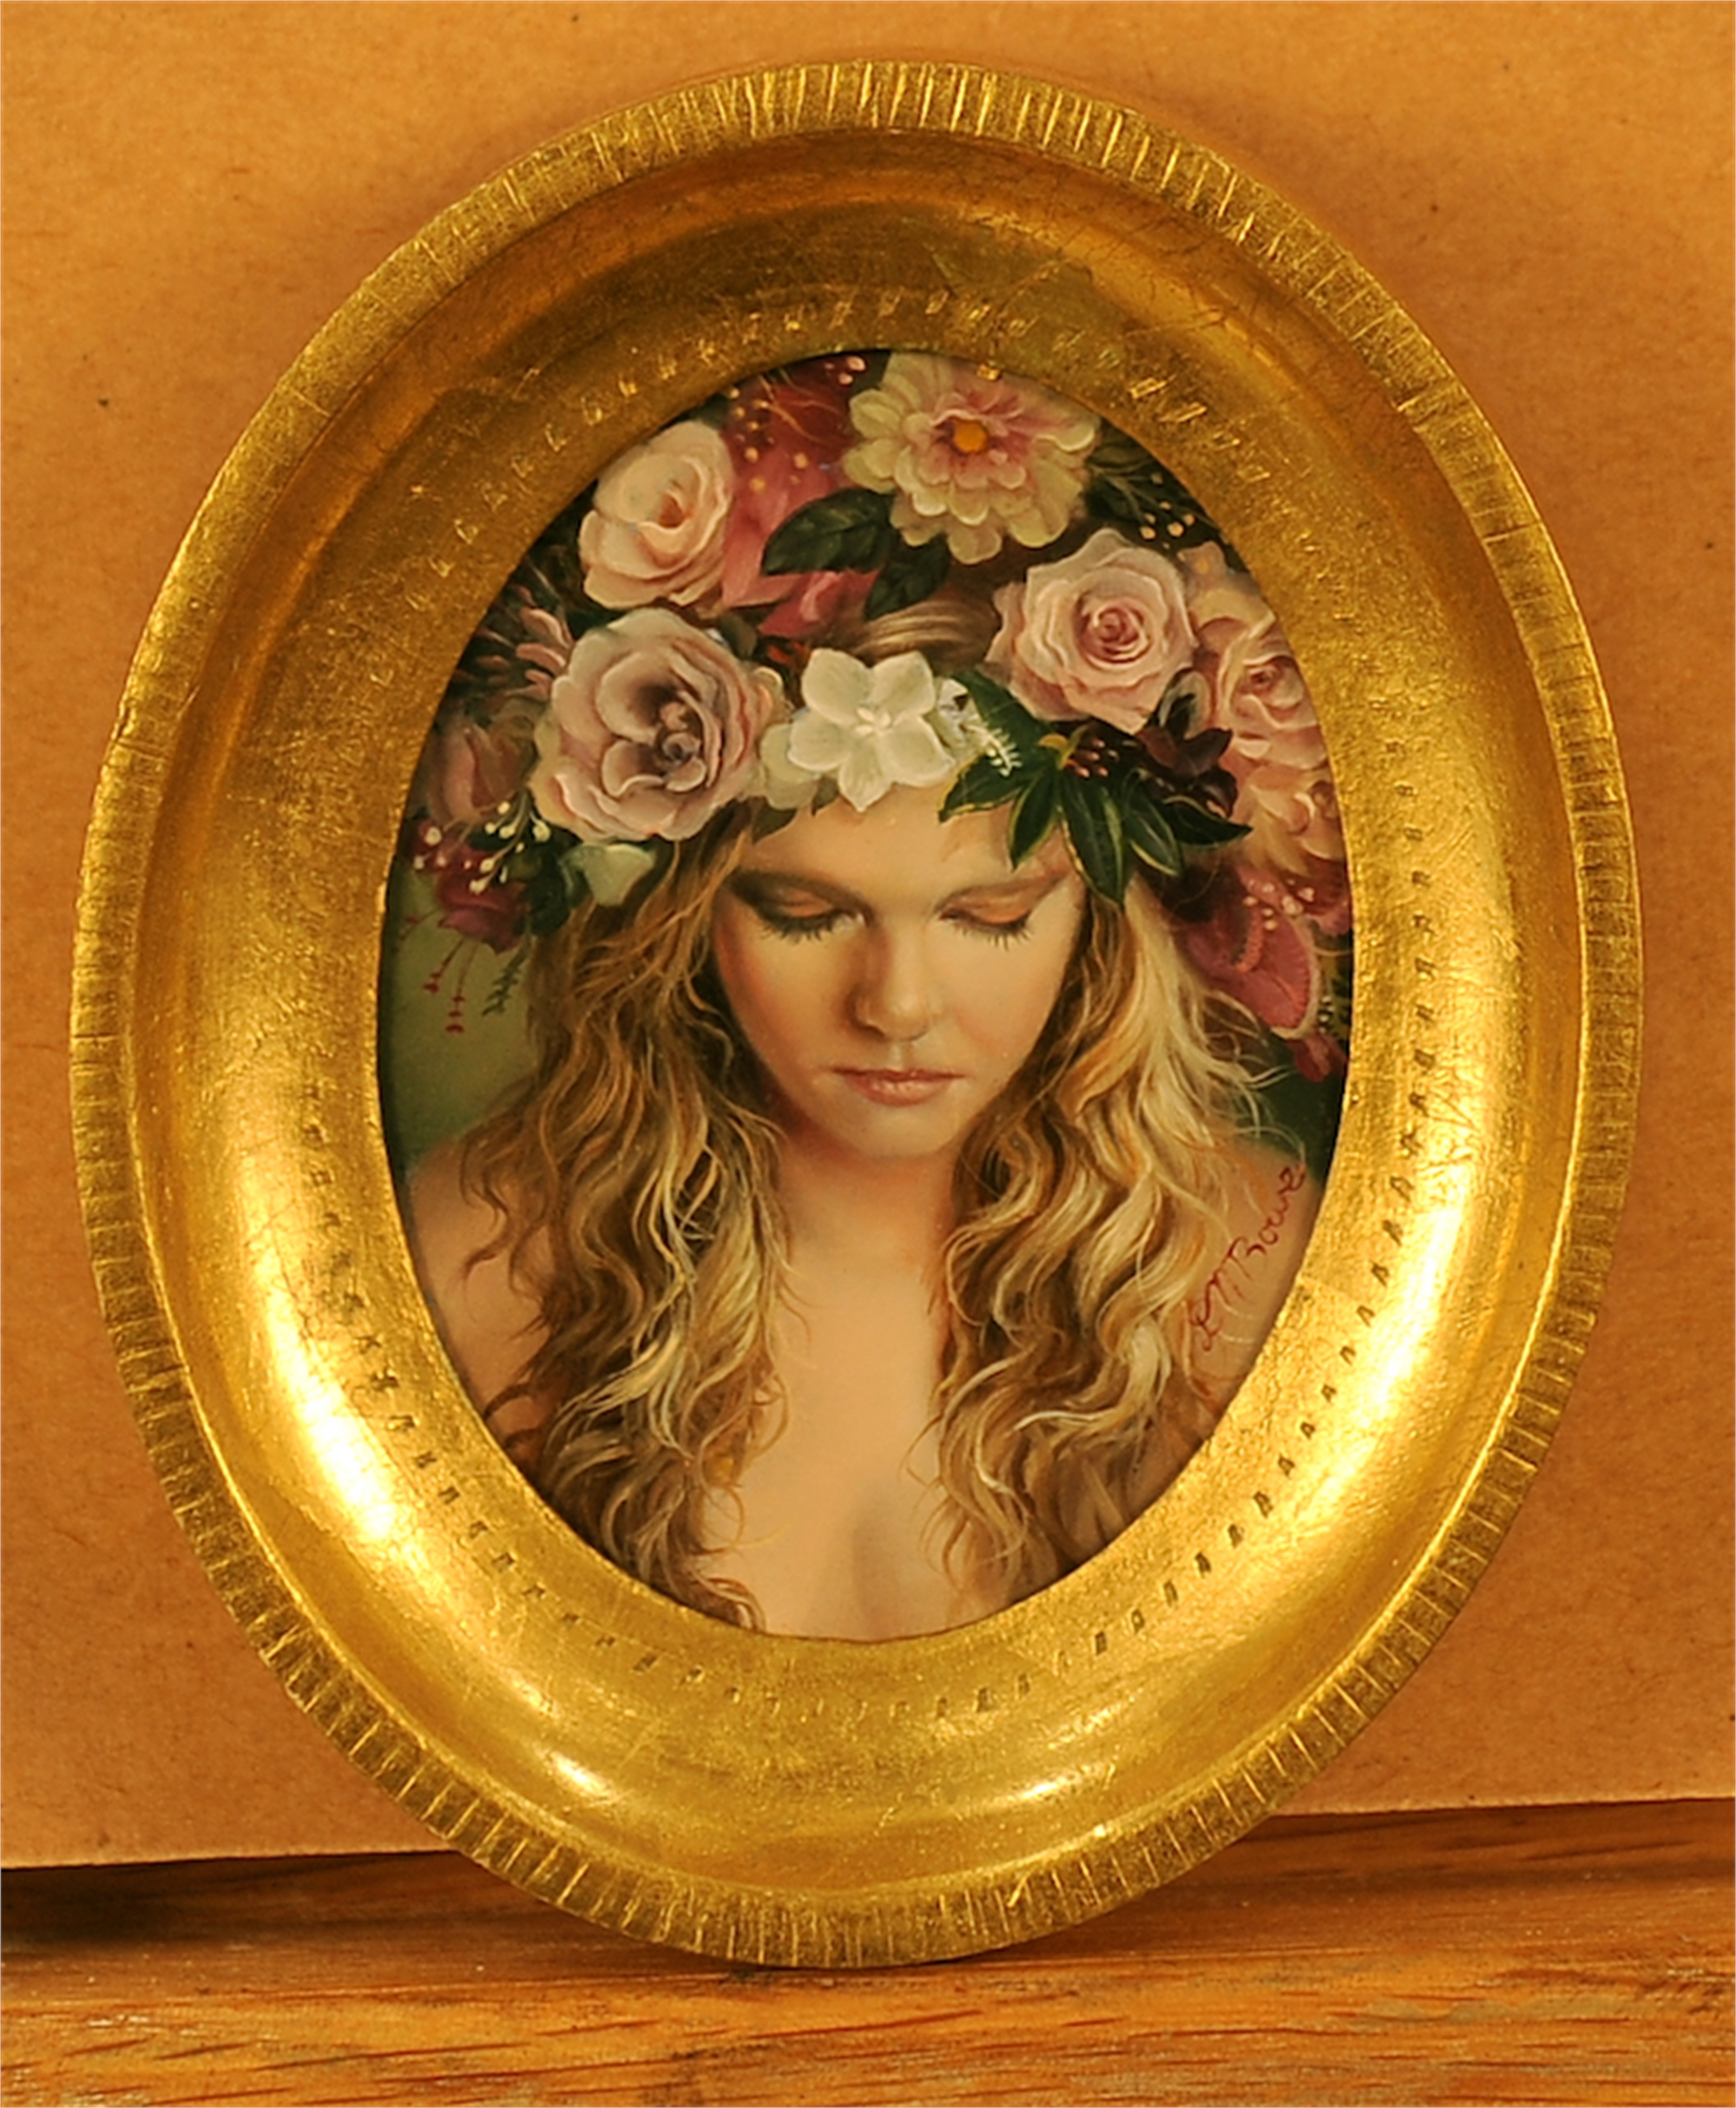 Flower Girl by David Michael Bowers